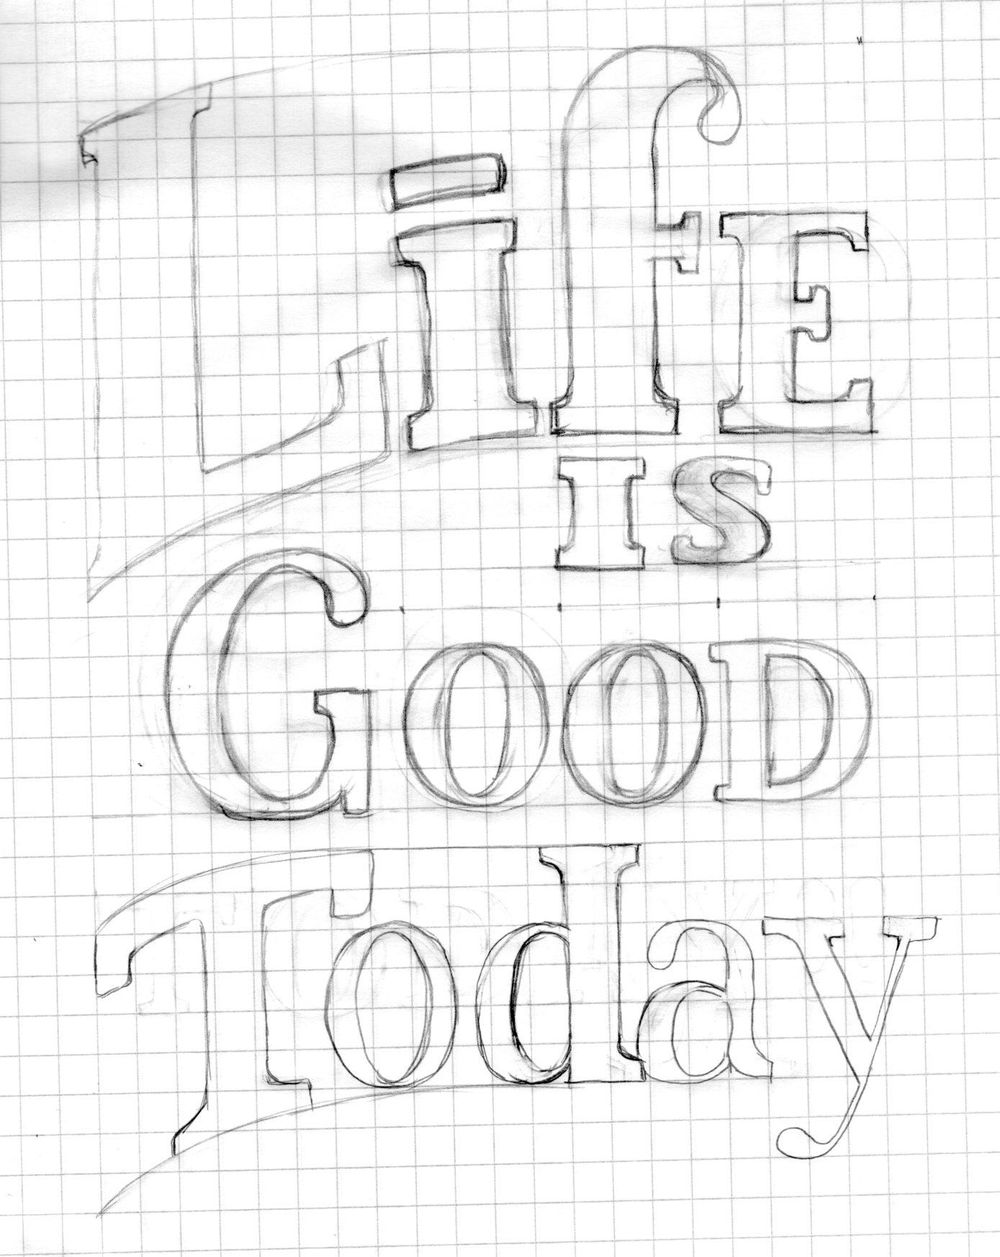 Life is Good Today - image 3 - student project